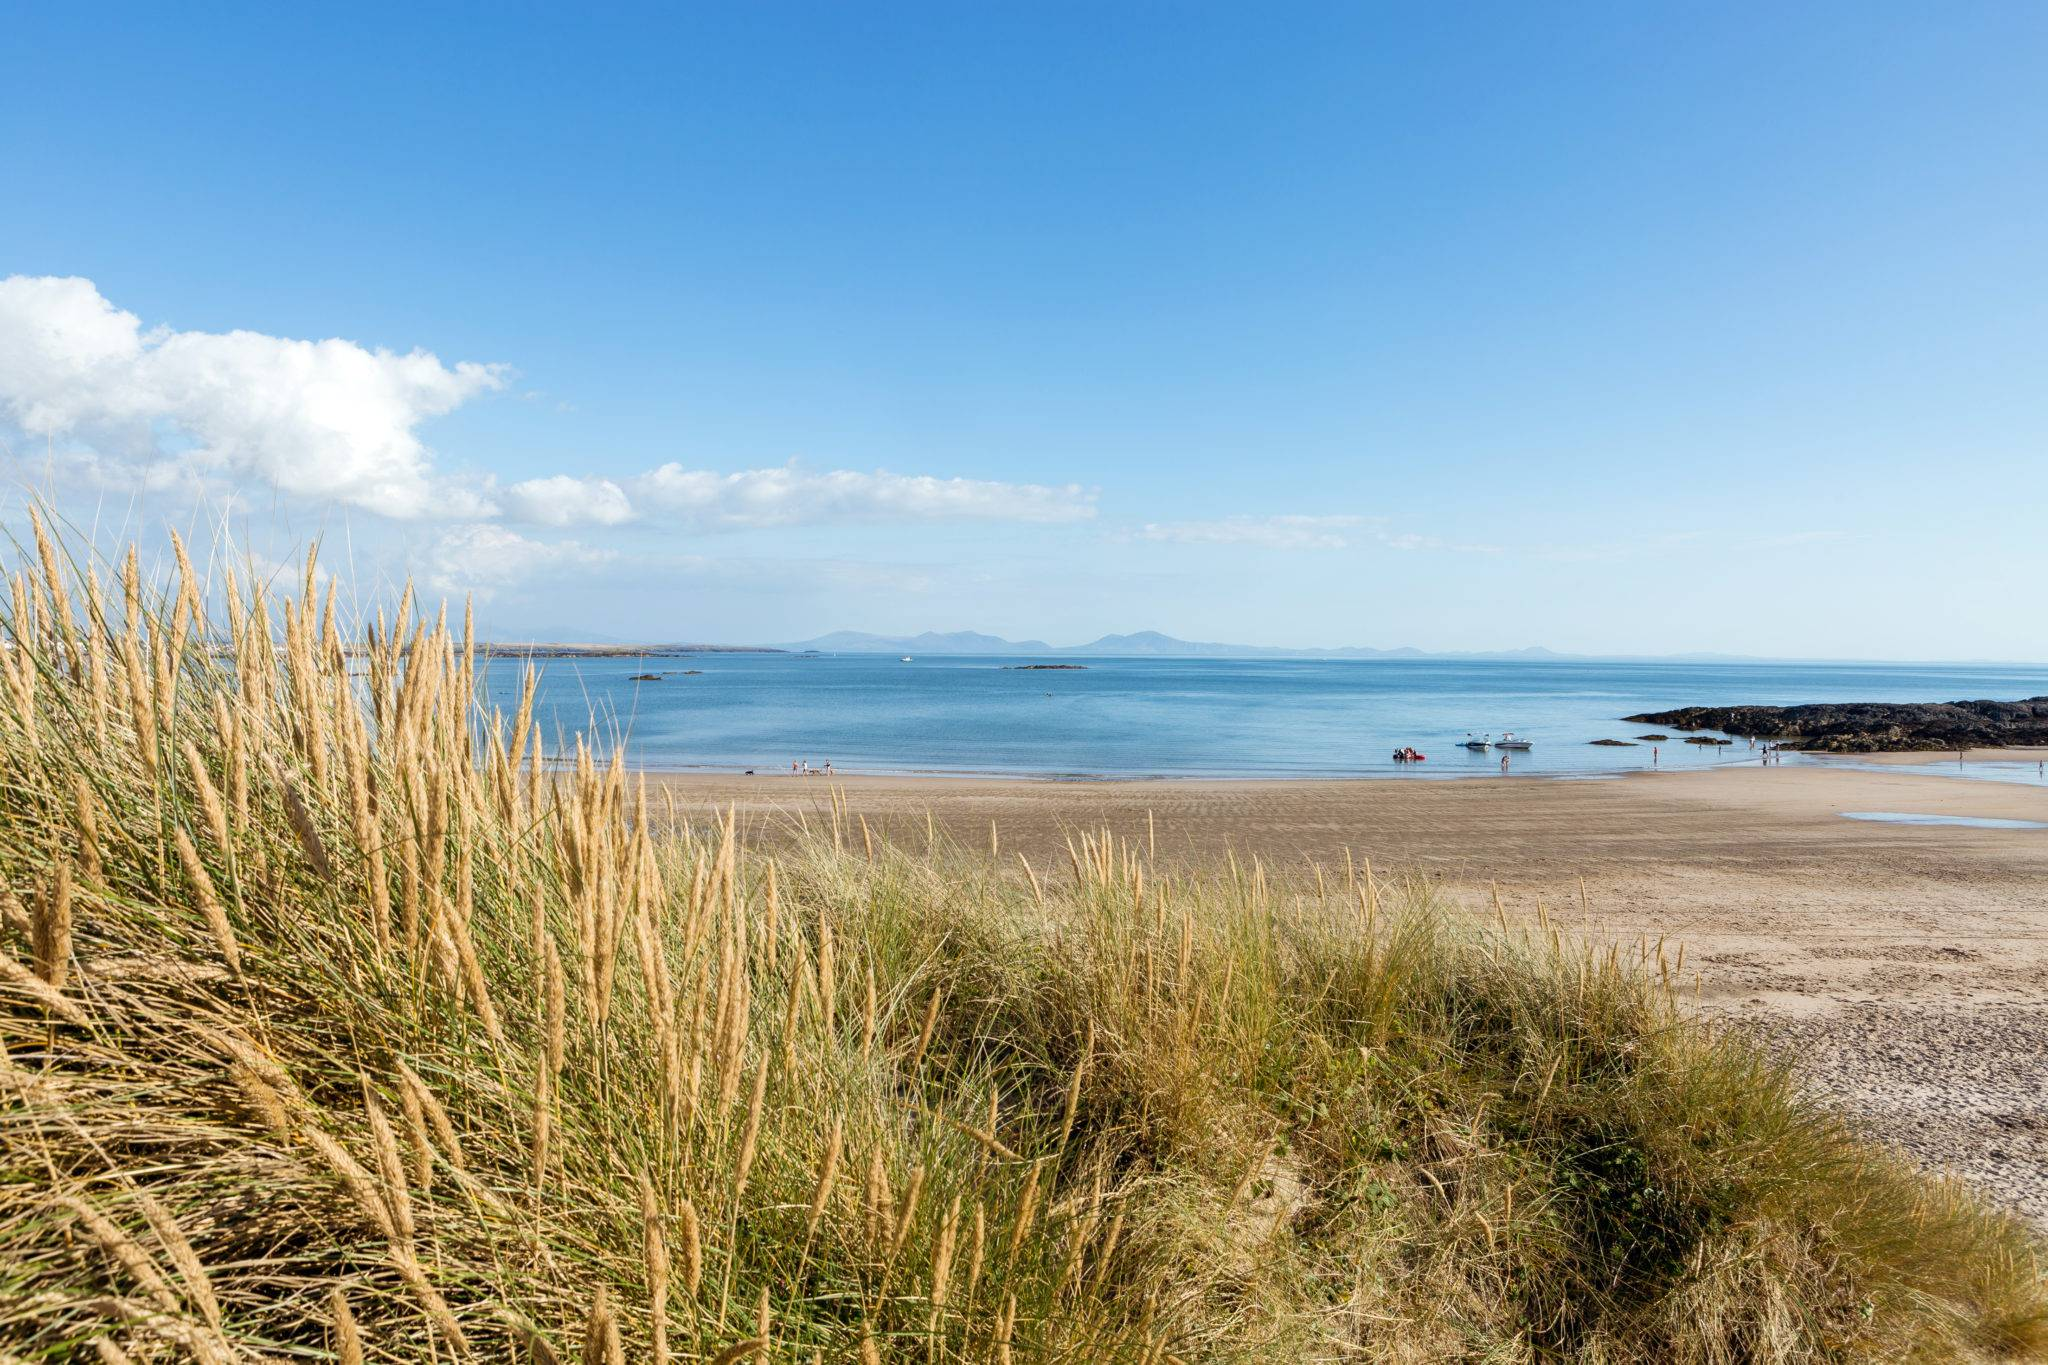 http://silverbay.co.uk/wp-content/uploads/2016/12/silver-bay-holiday-village-anglesey-beach-summer-grass-ocean.jpg